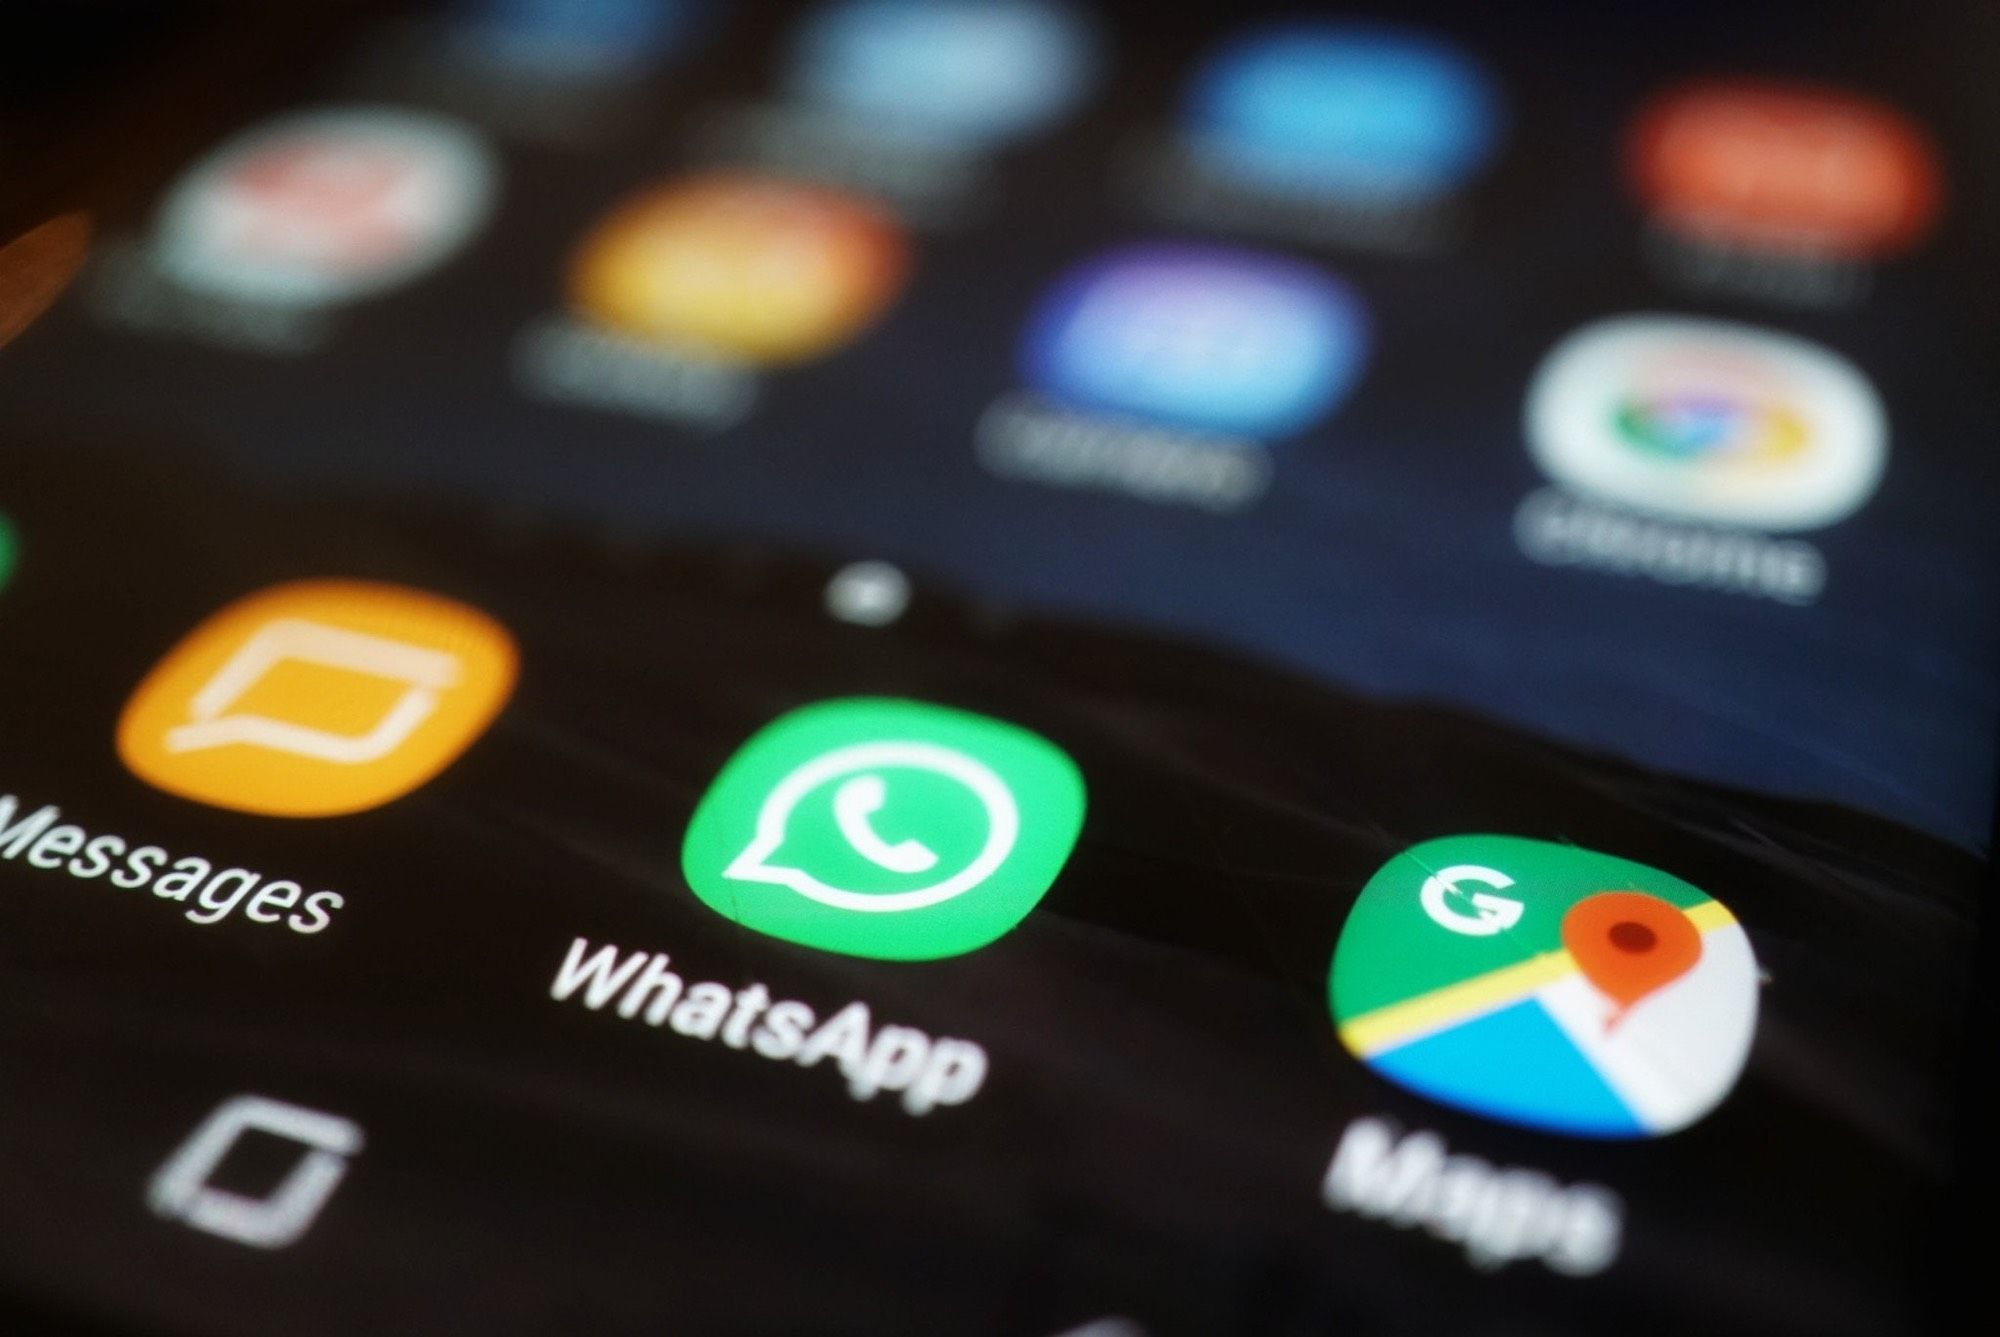 Why should you request Early Access to WhatsApp Business